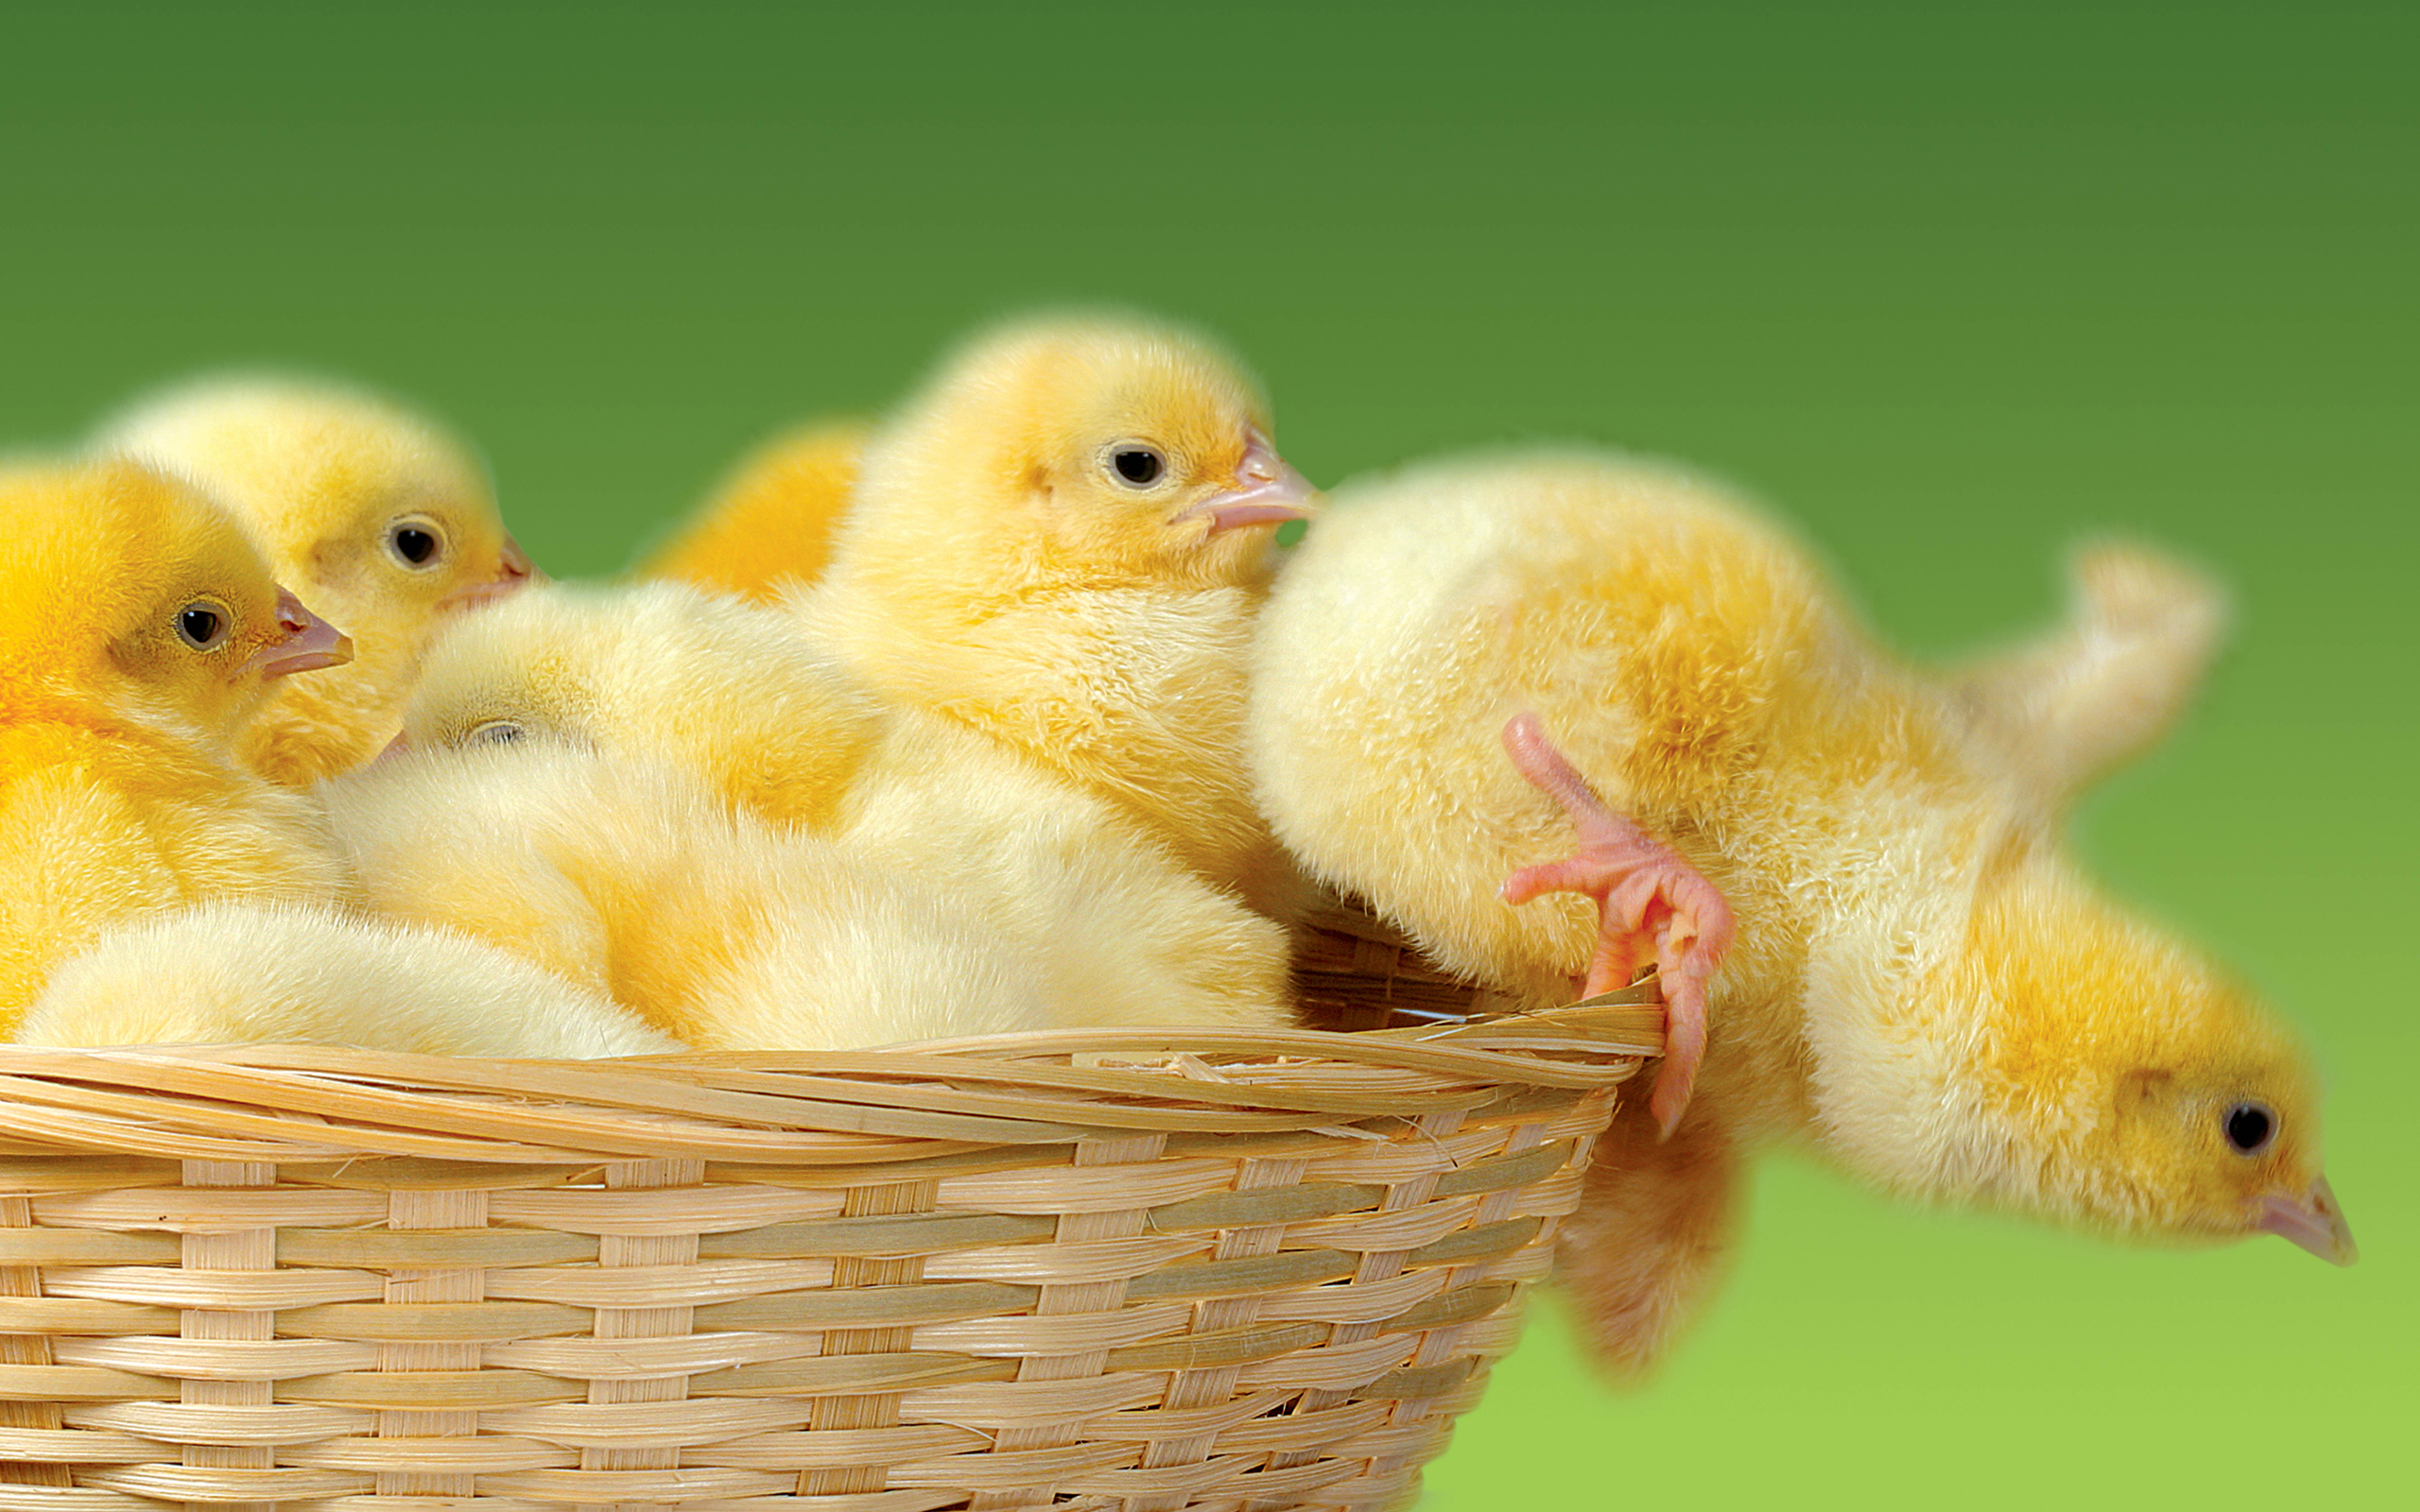 cute kid chicken falling down basket amazing pics